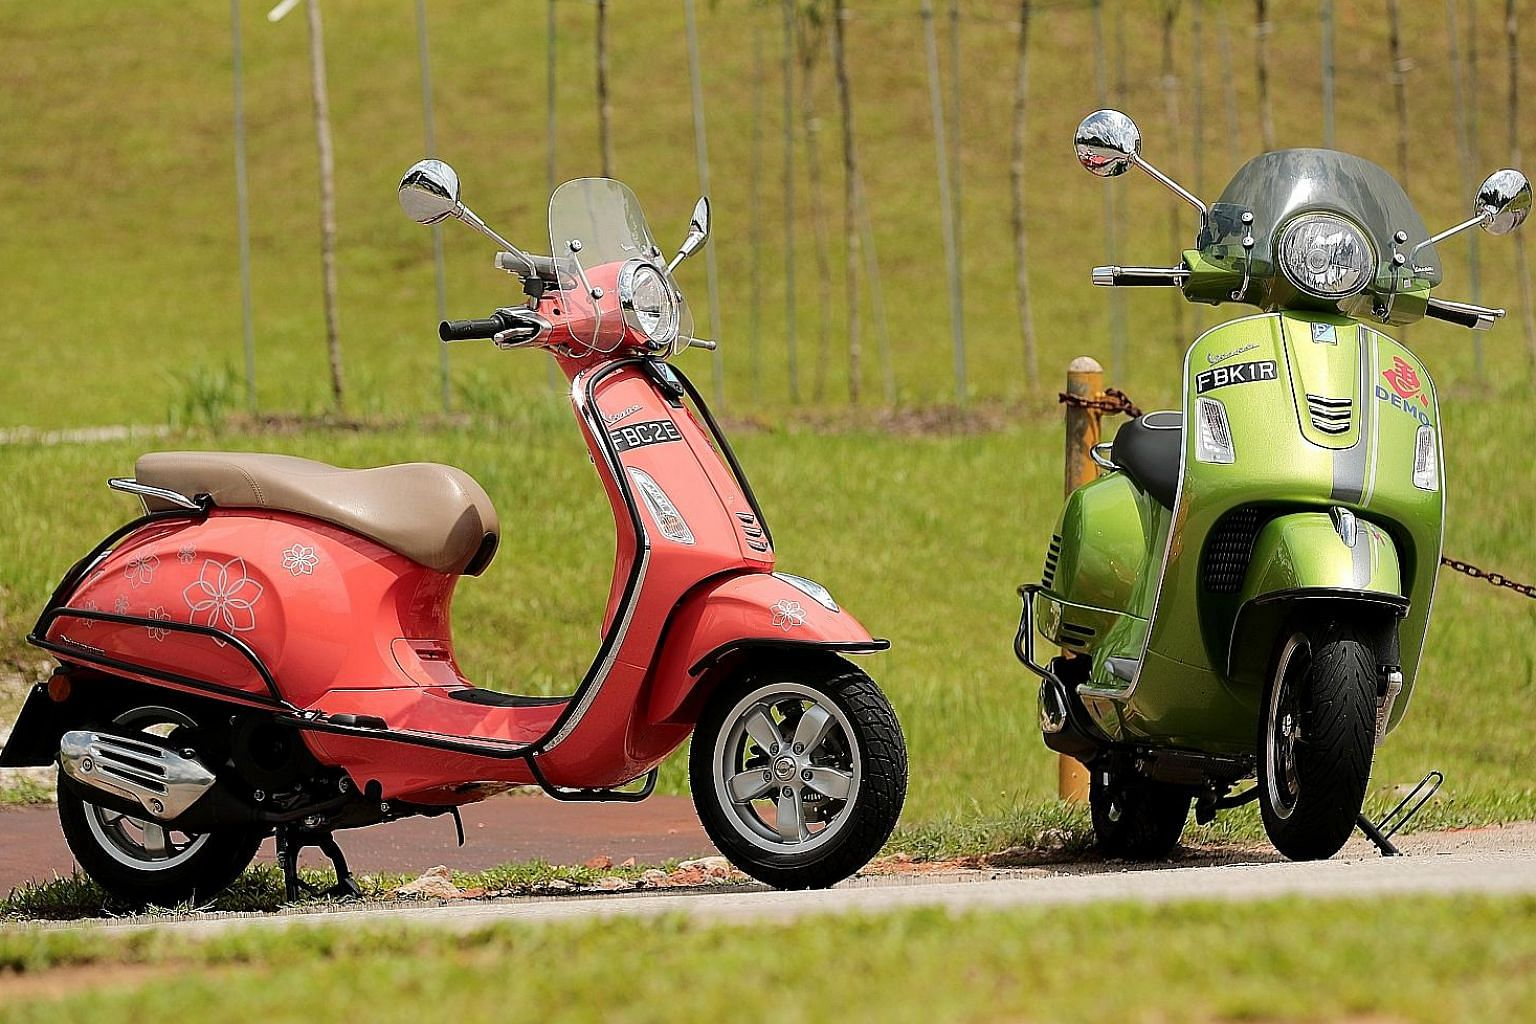 The 2018 Vespa Primavera 150 (left) may have a smaller engine than the GTS Super 300, but it is a lot lighter and has better fuel economy than its more powerful sibling.